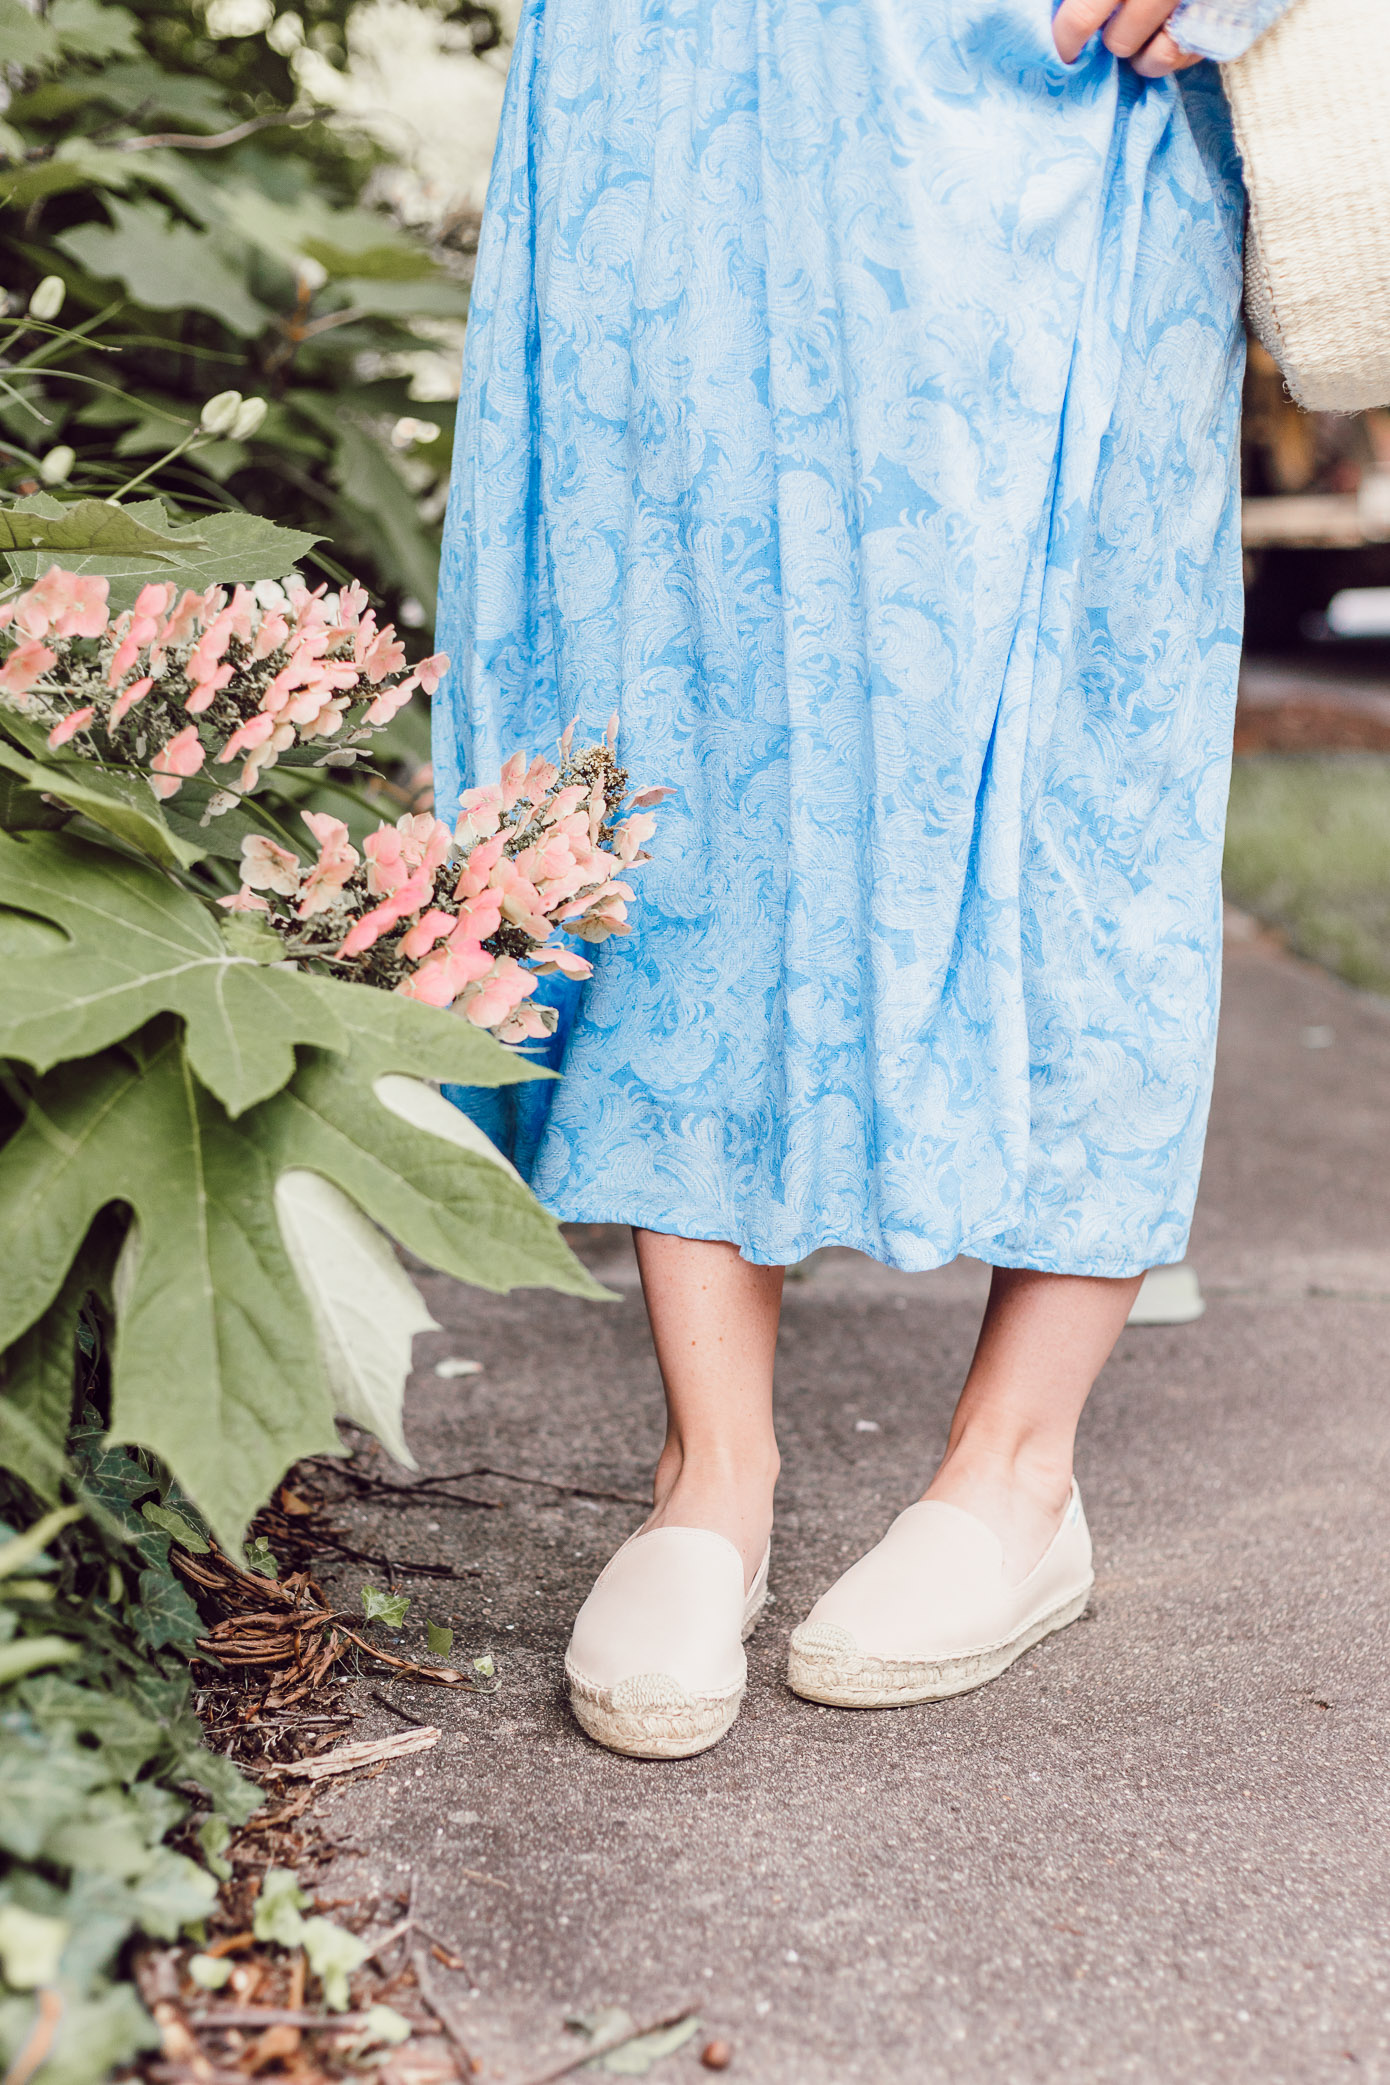 Soludos Espadrille Smoking Slippers | Blue Kimono Dress for Summer styled on Louella Reese